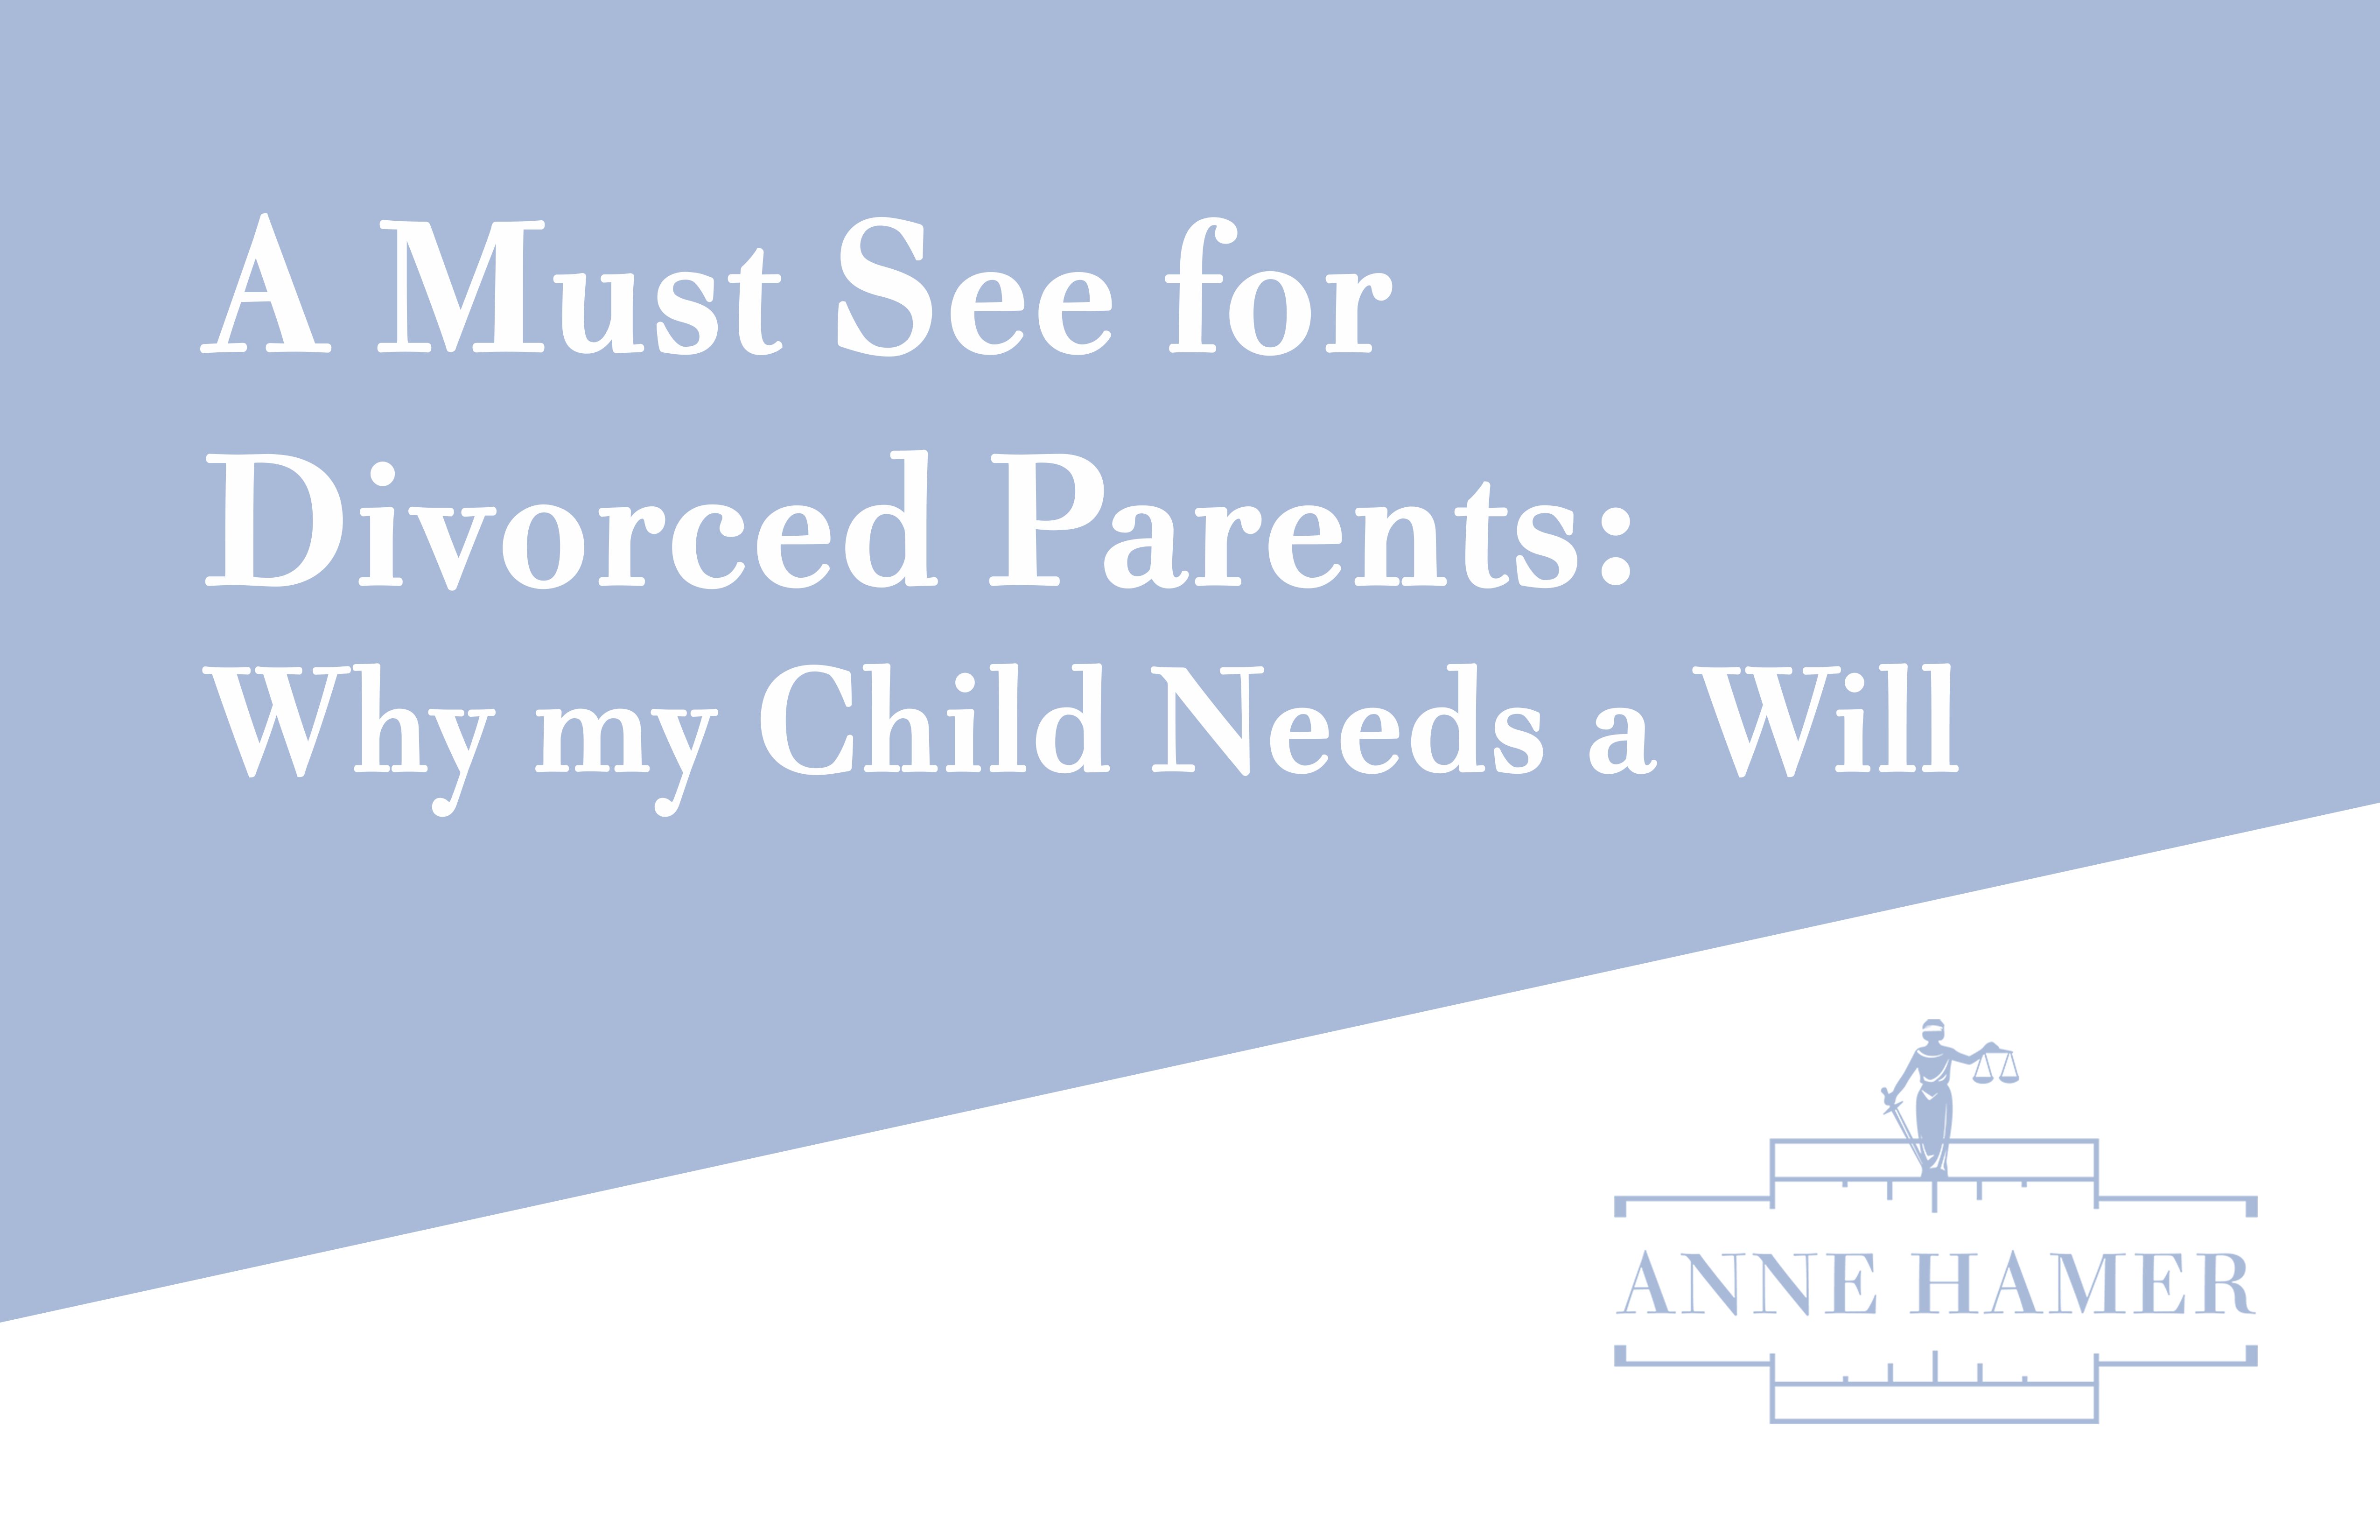 A Must See for Divorced Parents: Why my Child Needs a Will